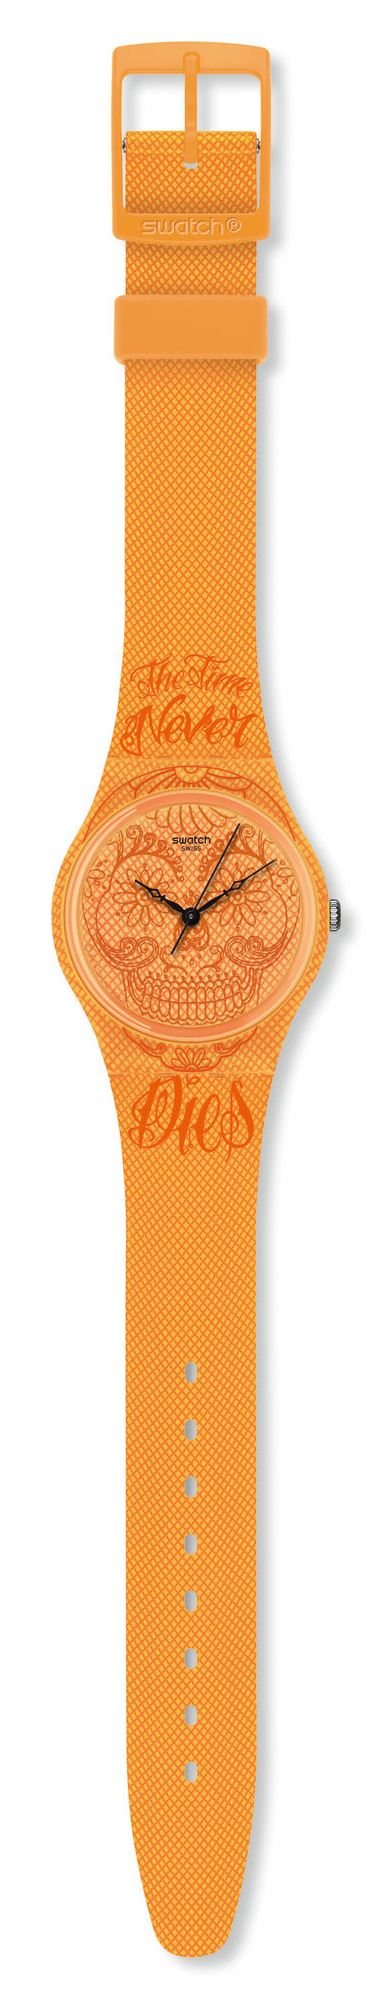 SWATCH GO110 TIME NEVER DIES - ORANGE